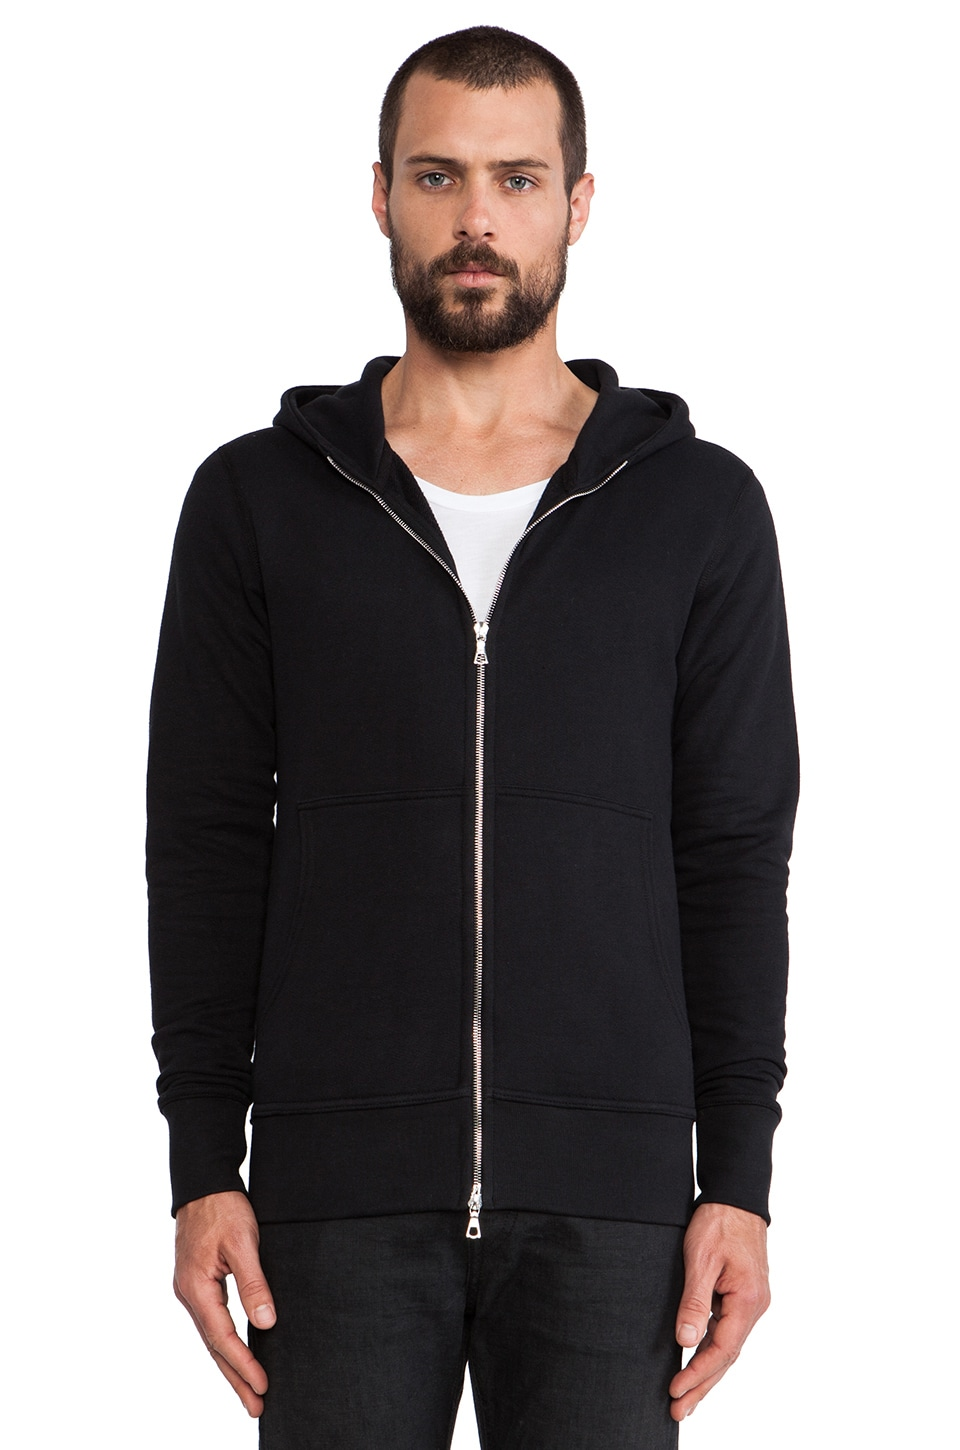 JOHN ELLIOTT Flash Full Zip Hoodie in Black